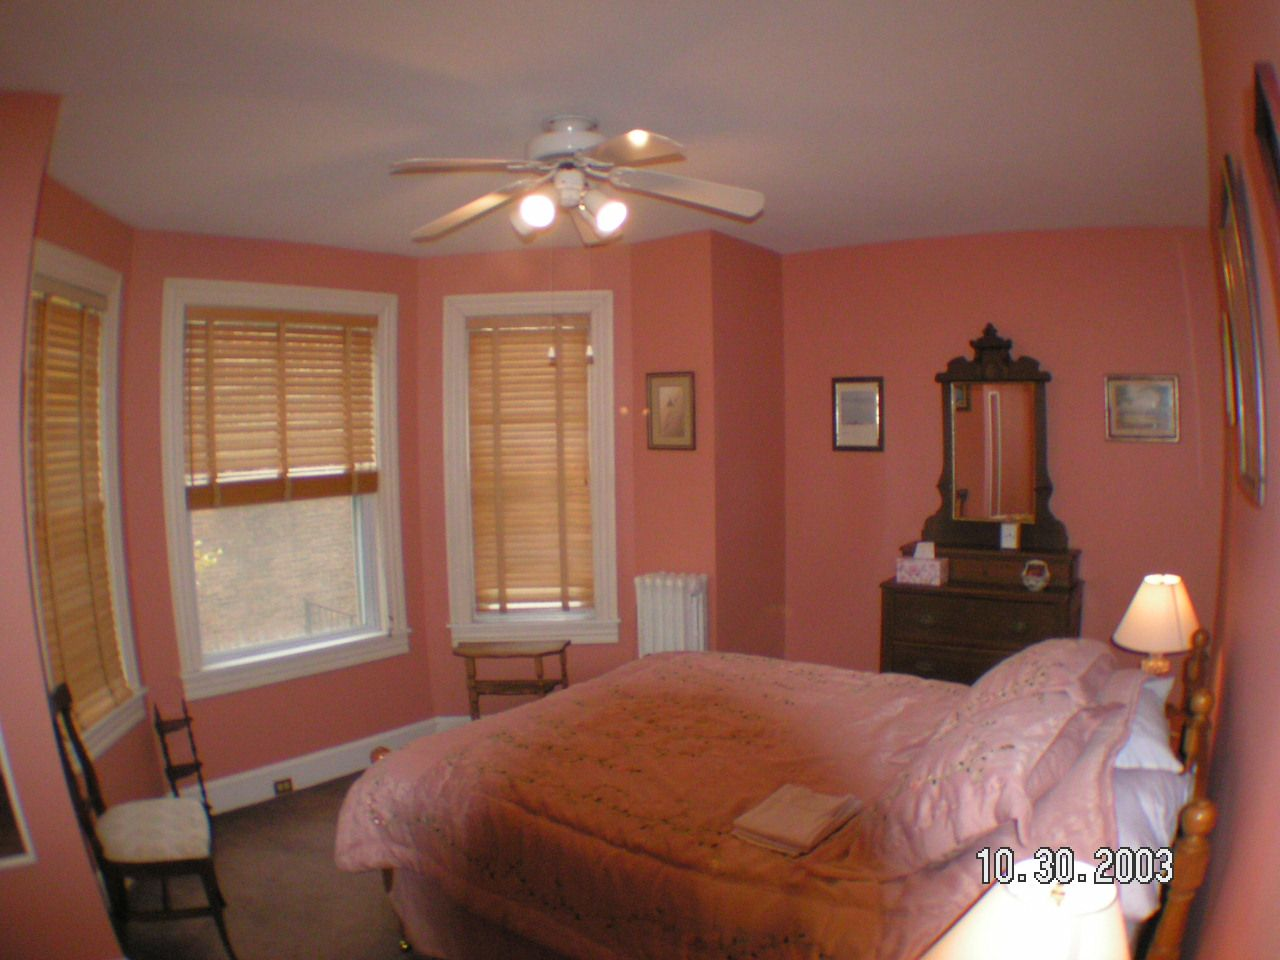 Pretty Pink and White Bedroom Design in Peach Color with ...